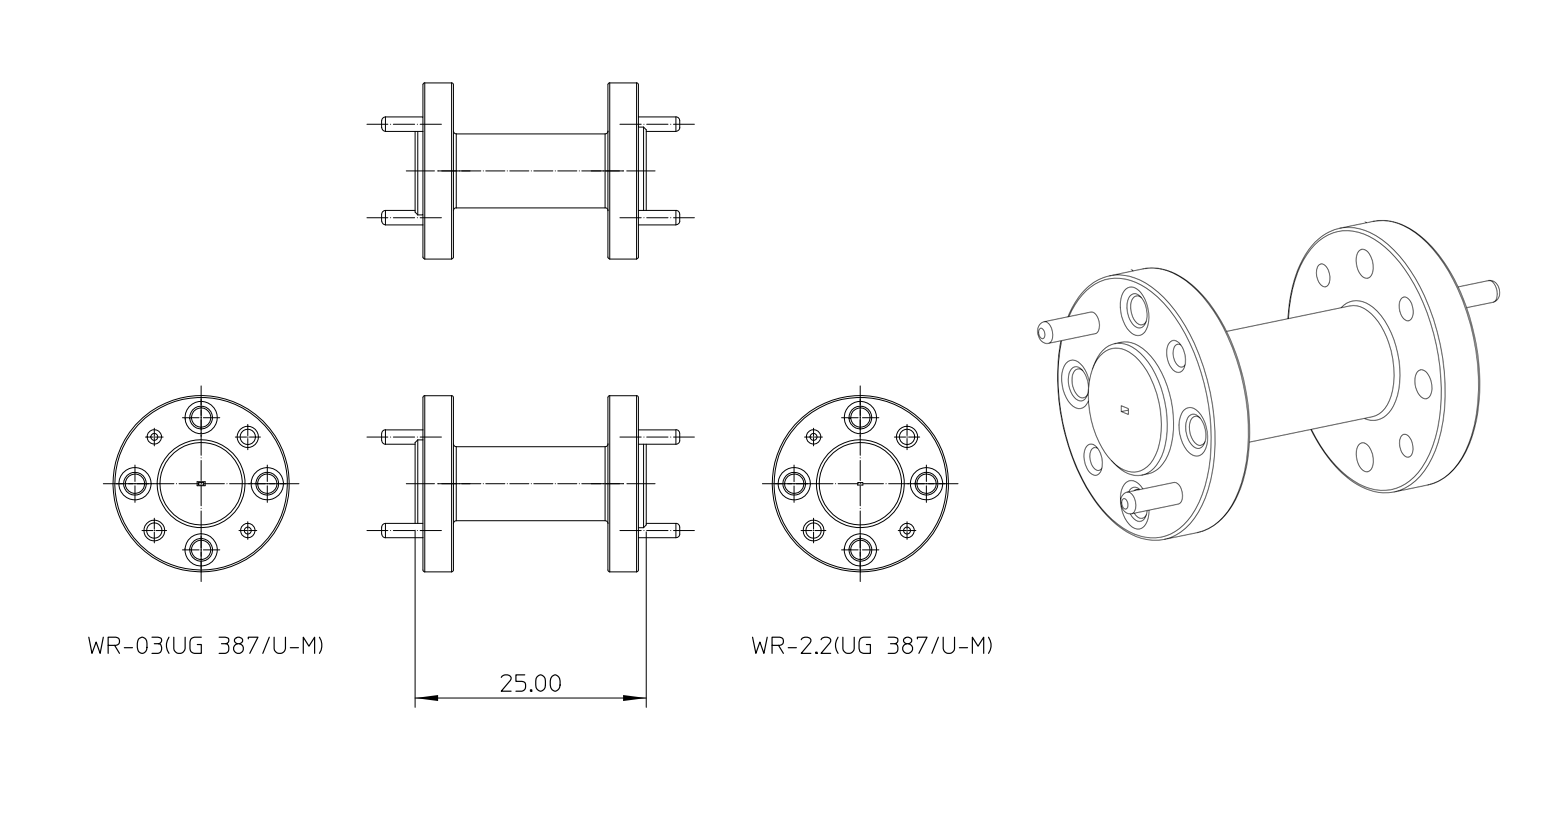 waveguide section outline drawing